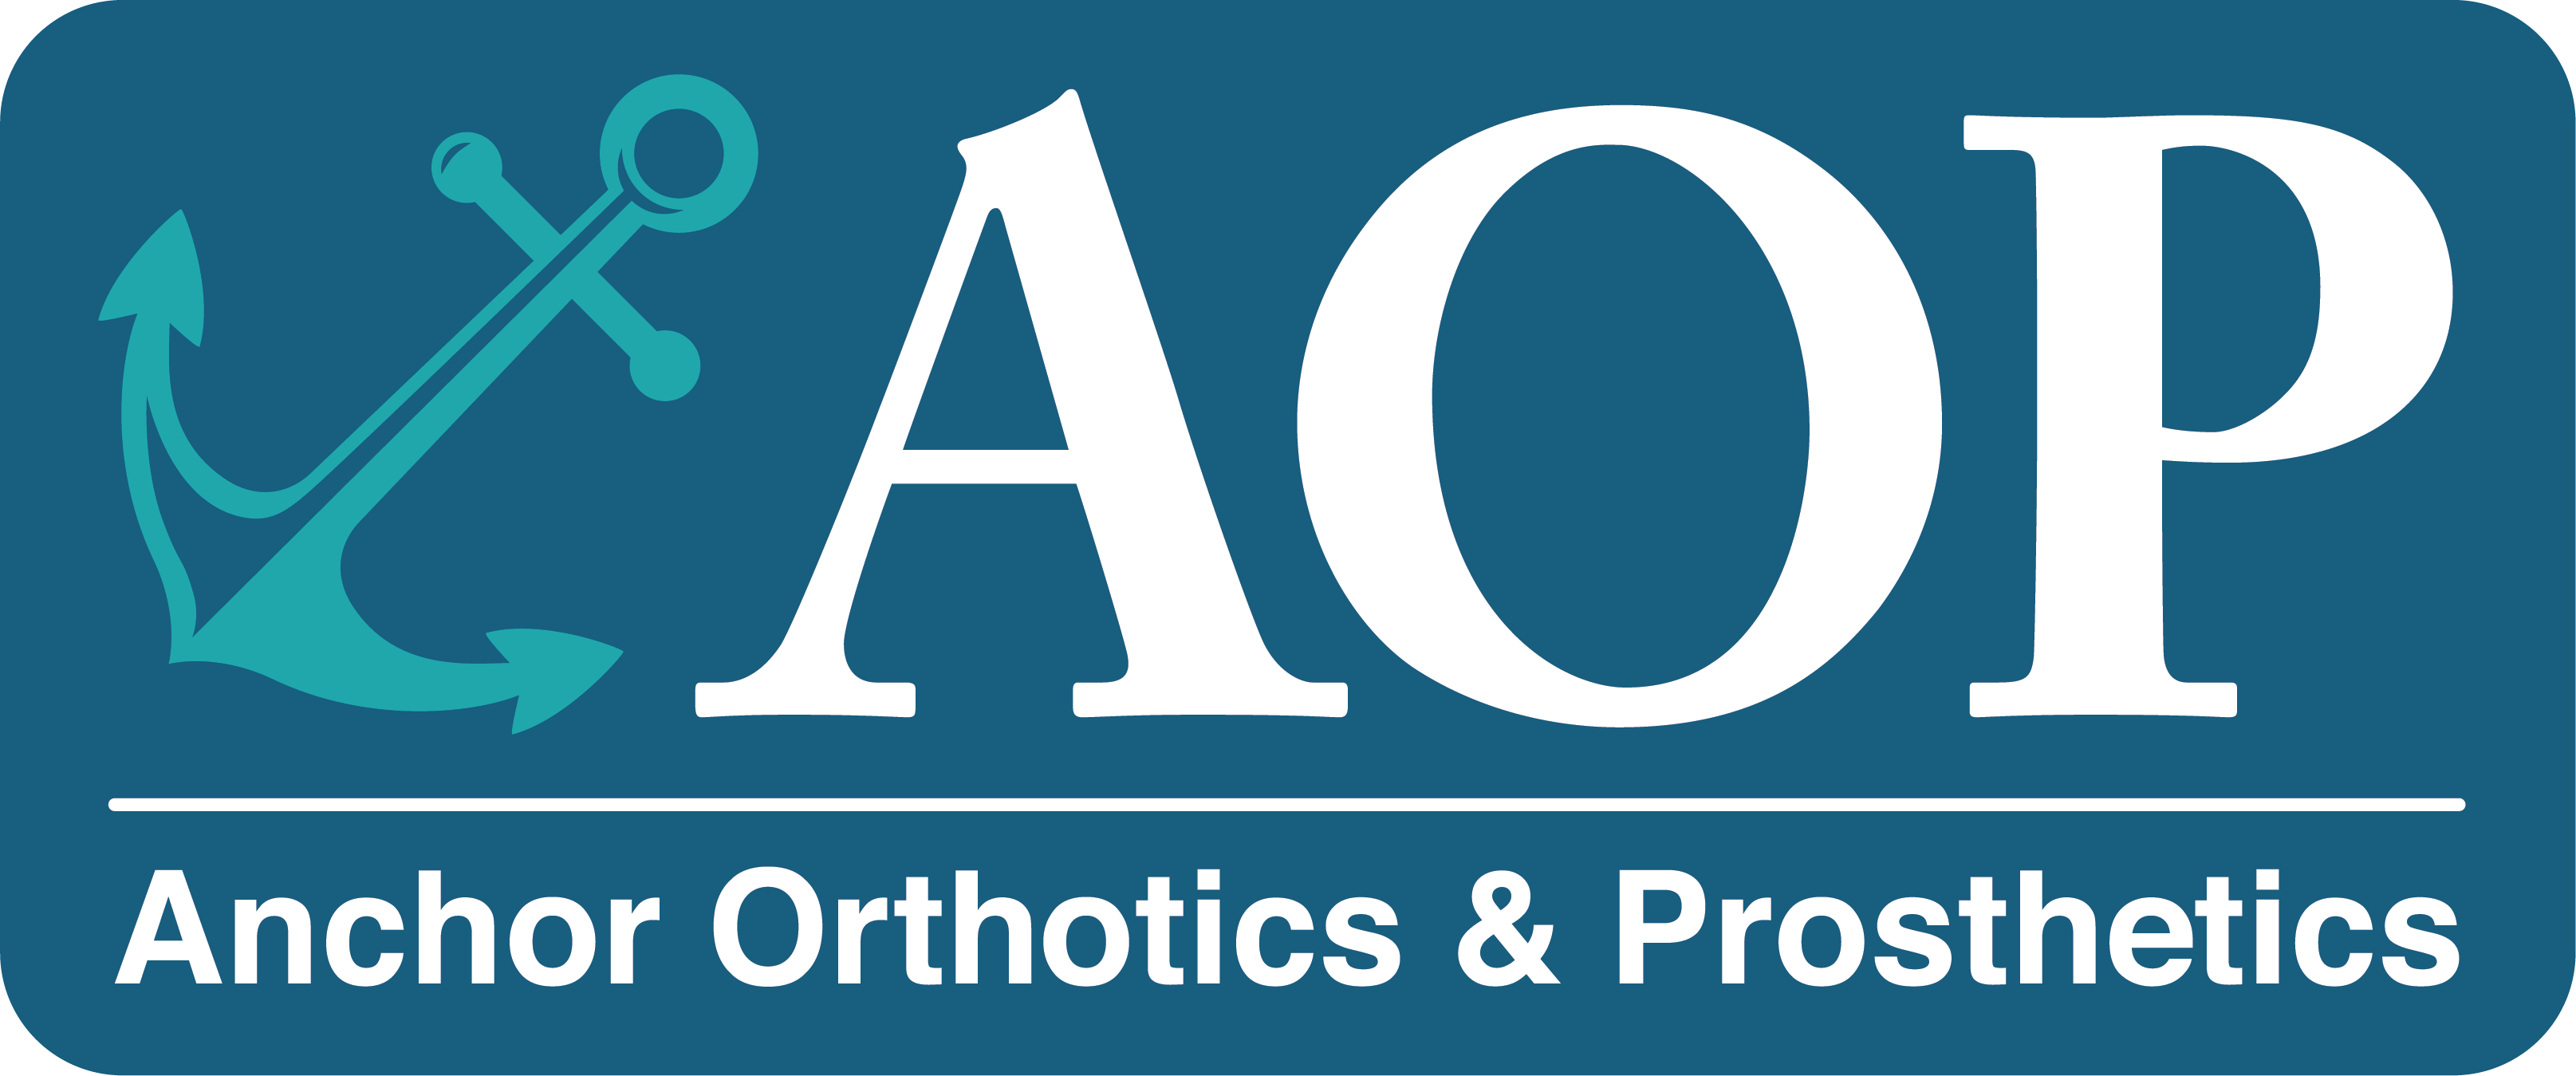 Anchor Orthotics & Prosthetics